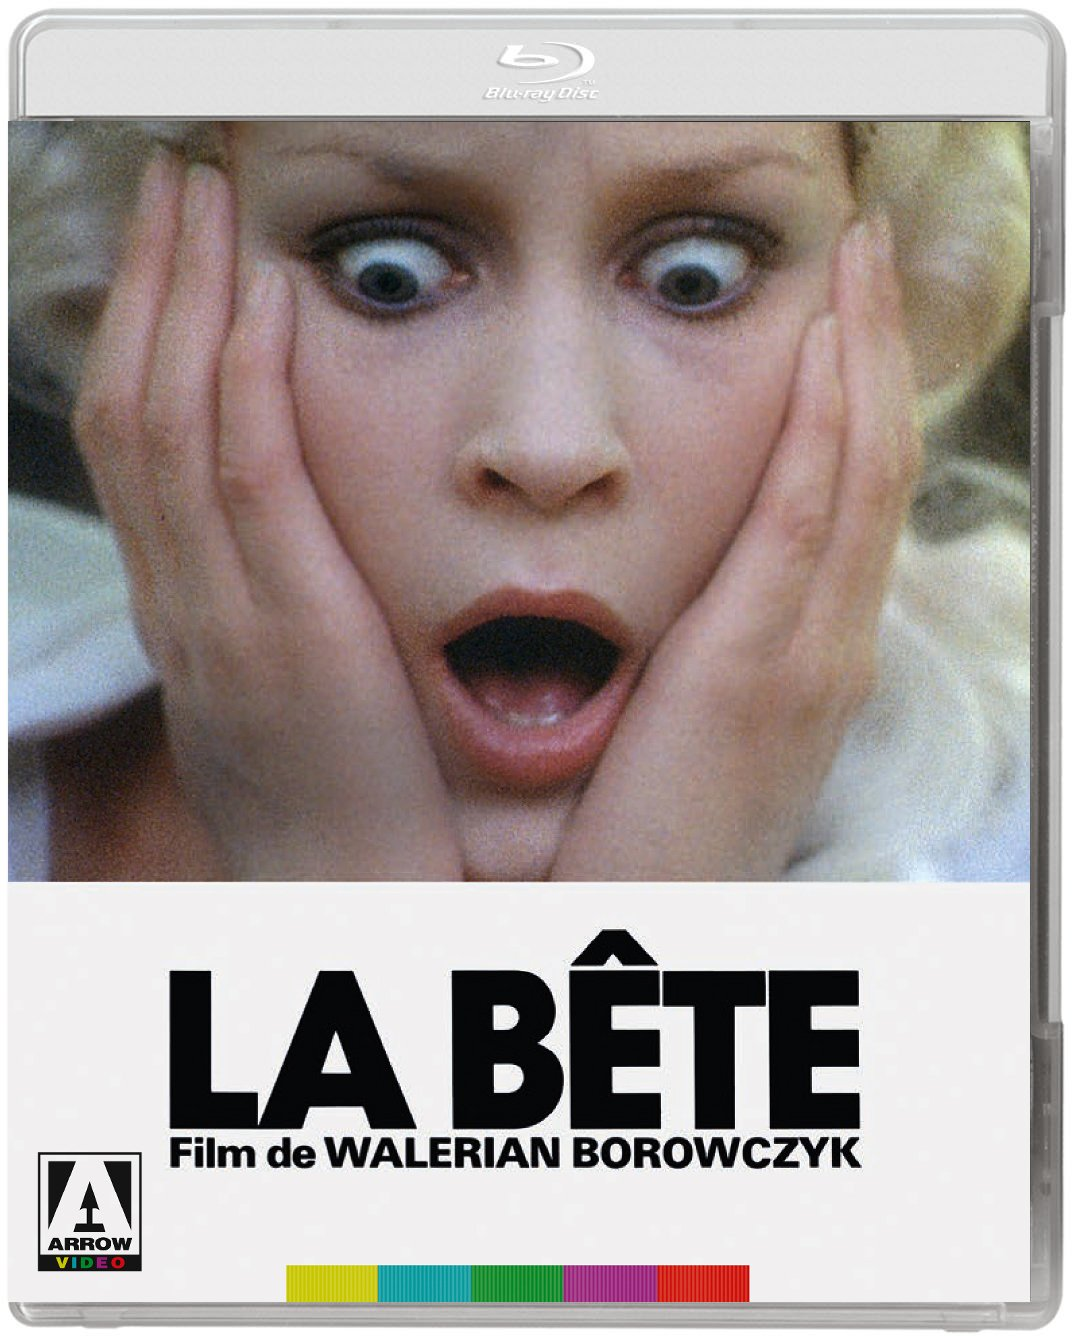 Download image 1700s woman portrait pc android iphone and ipad - Amazon Com The Beast 2 Disc Special Edition Blu Ray Dvd Sirpa Lane Lisbeth Hummel Elisabeth Kaza Walerian Borowczyk Movies Tv